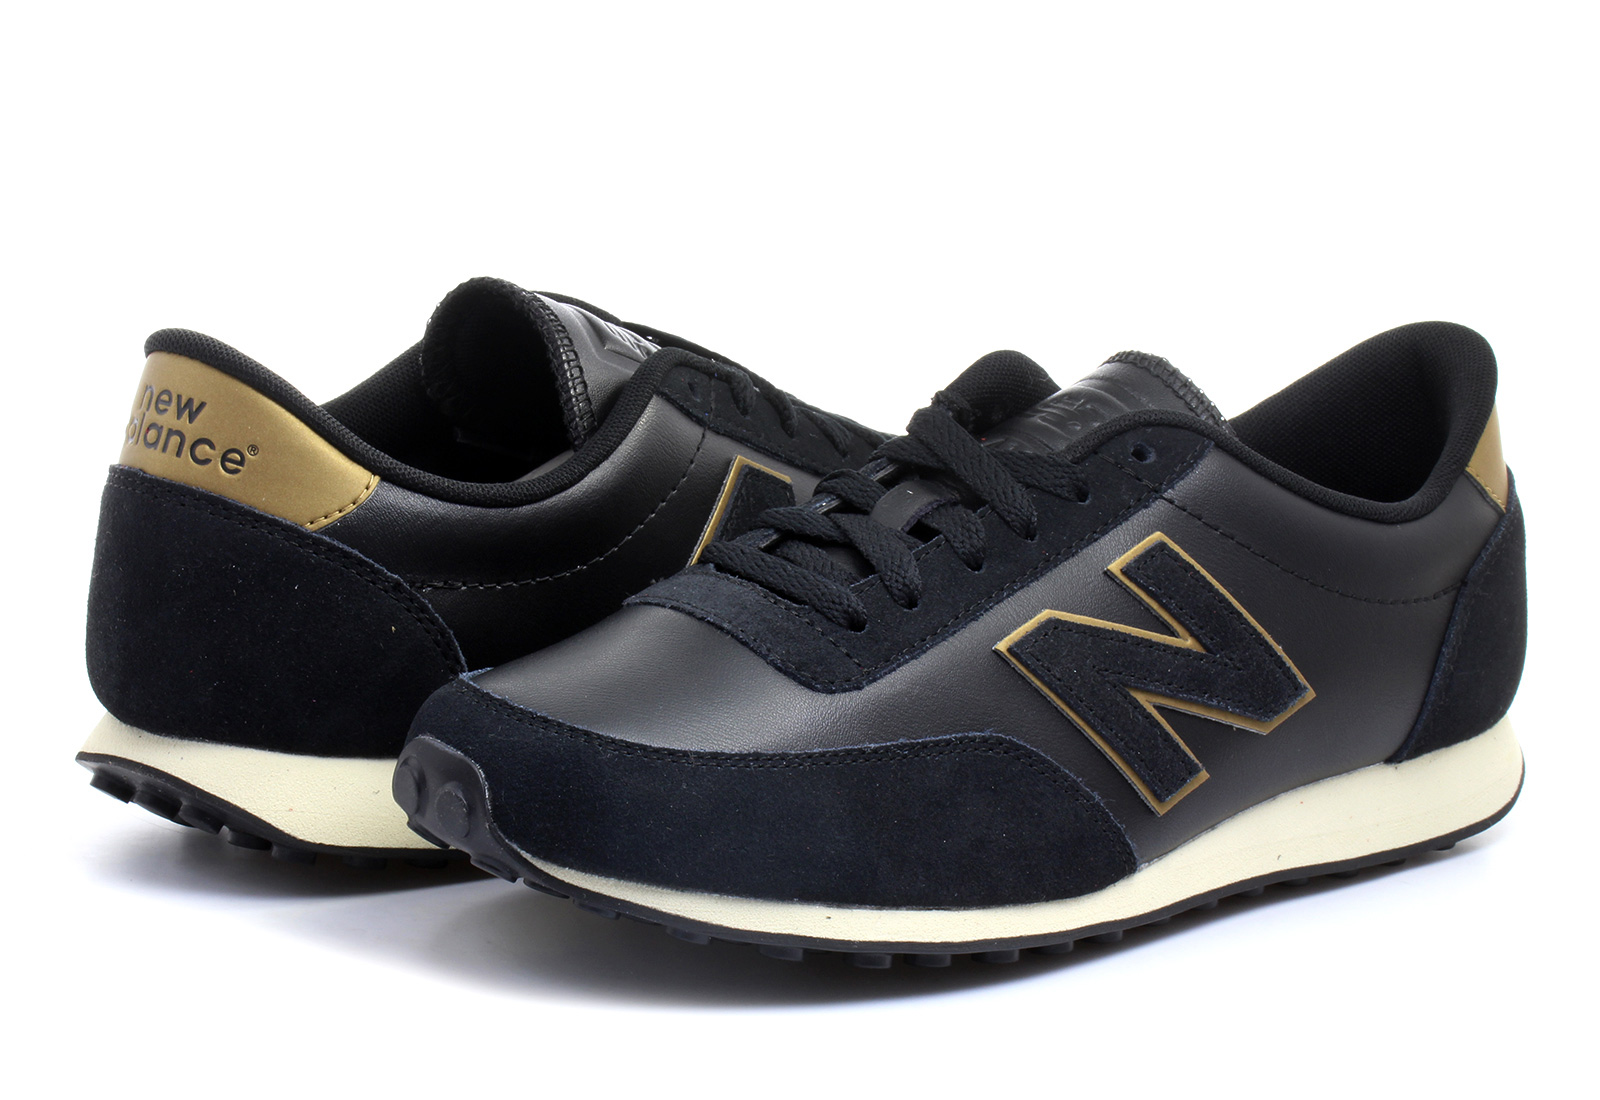 nouveaux styles ce86e 02d4a New Balance Shoes - U410 - U410SKG - Online shop for sneakers, shoes and  boots